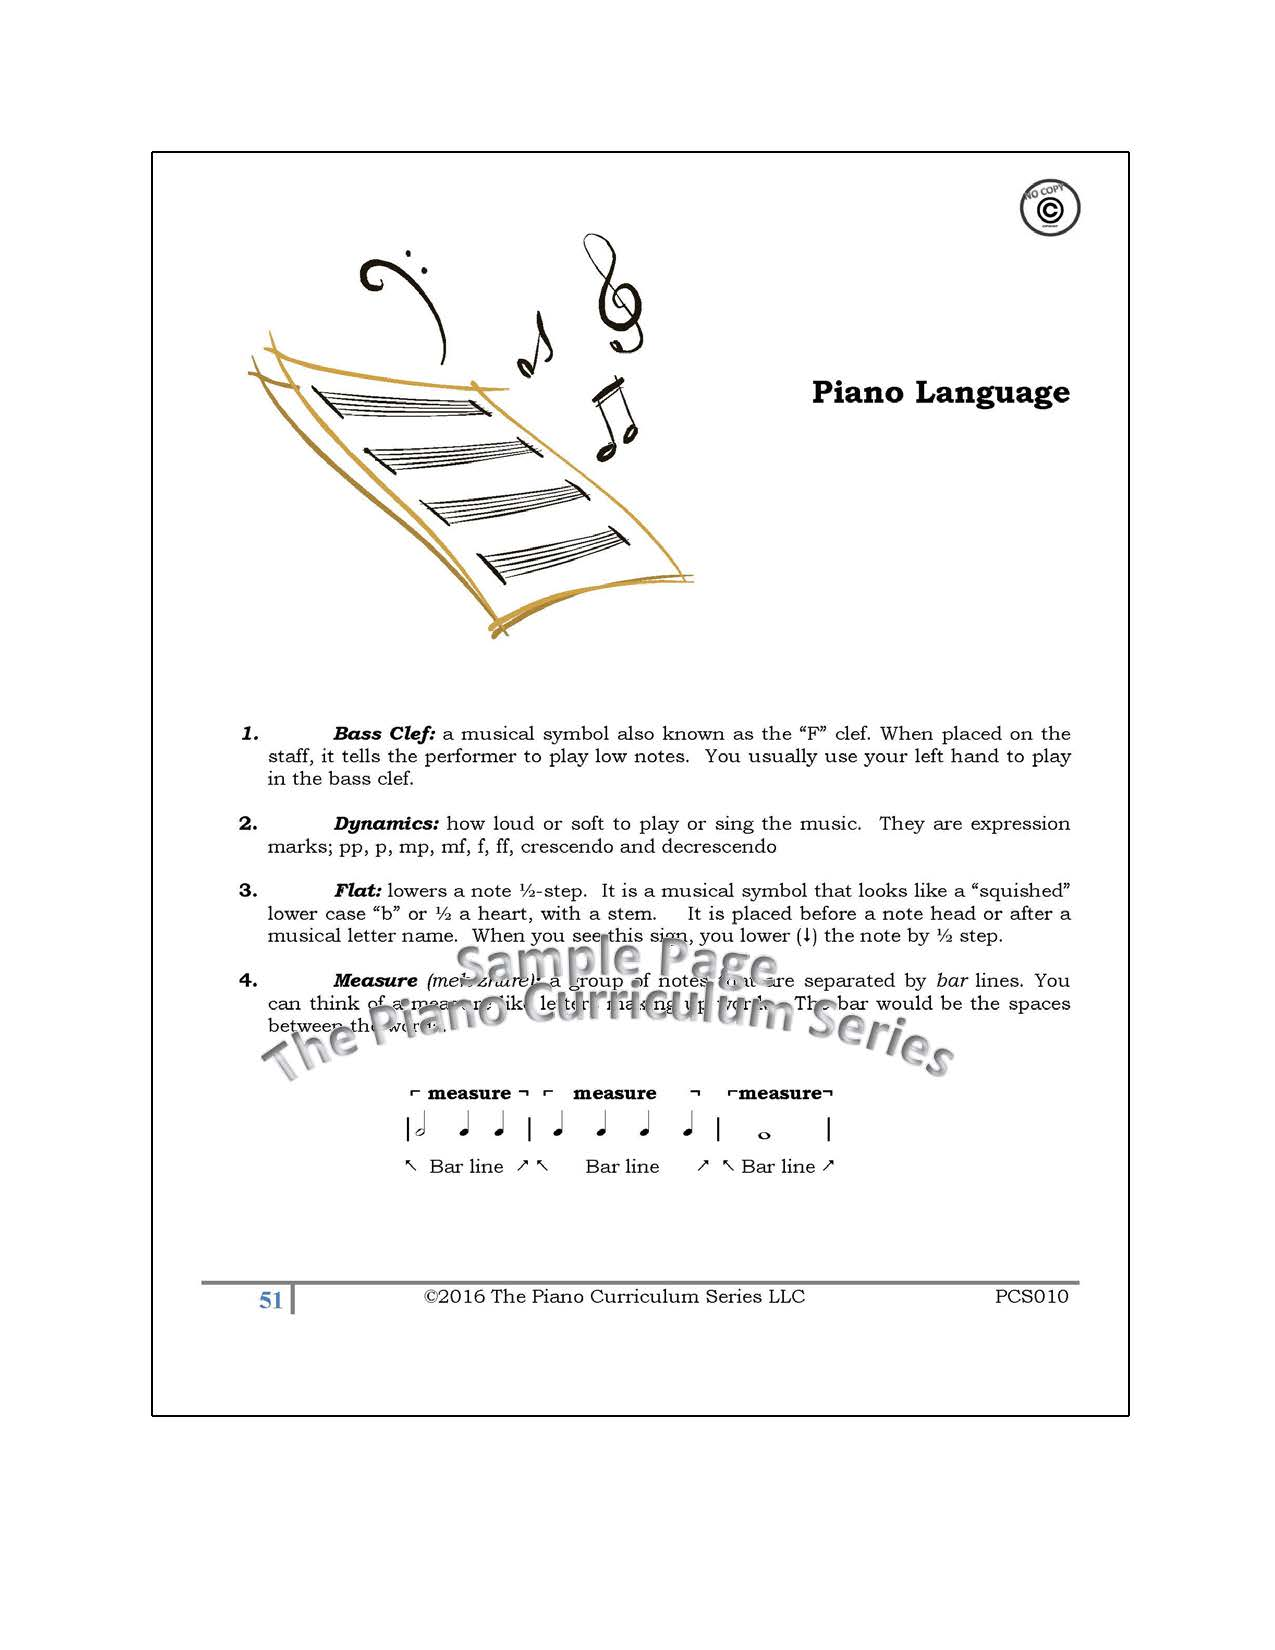 1a piano world piano curriculum series